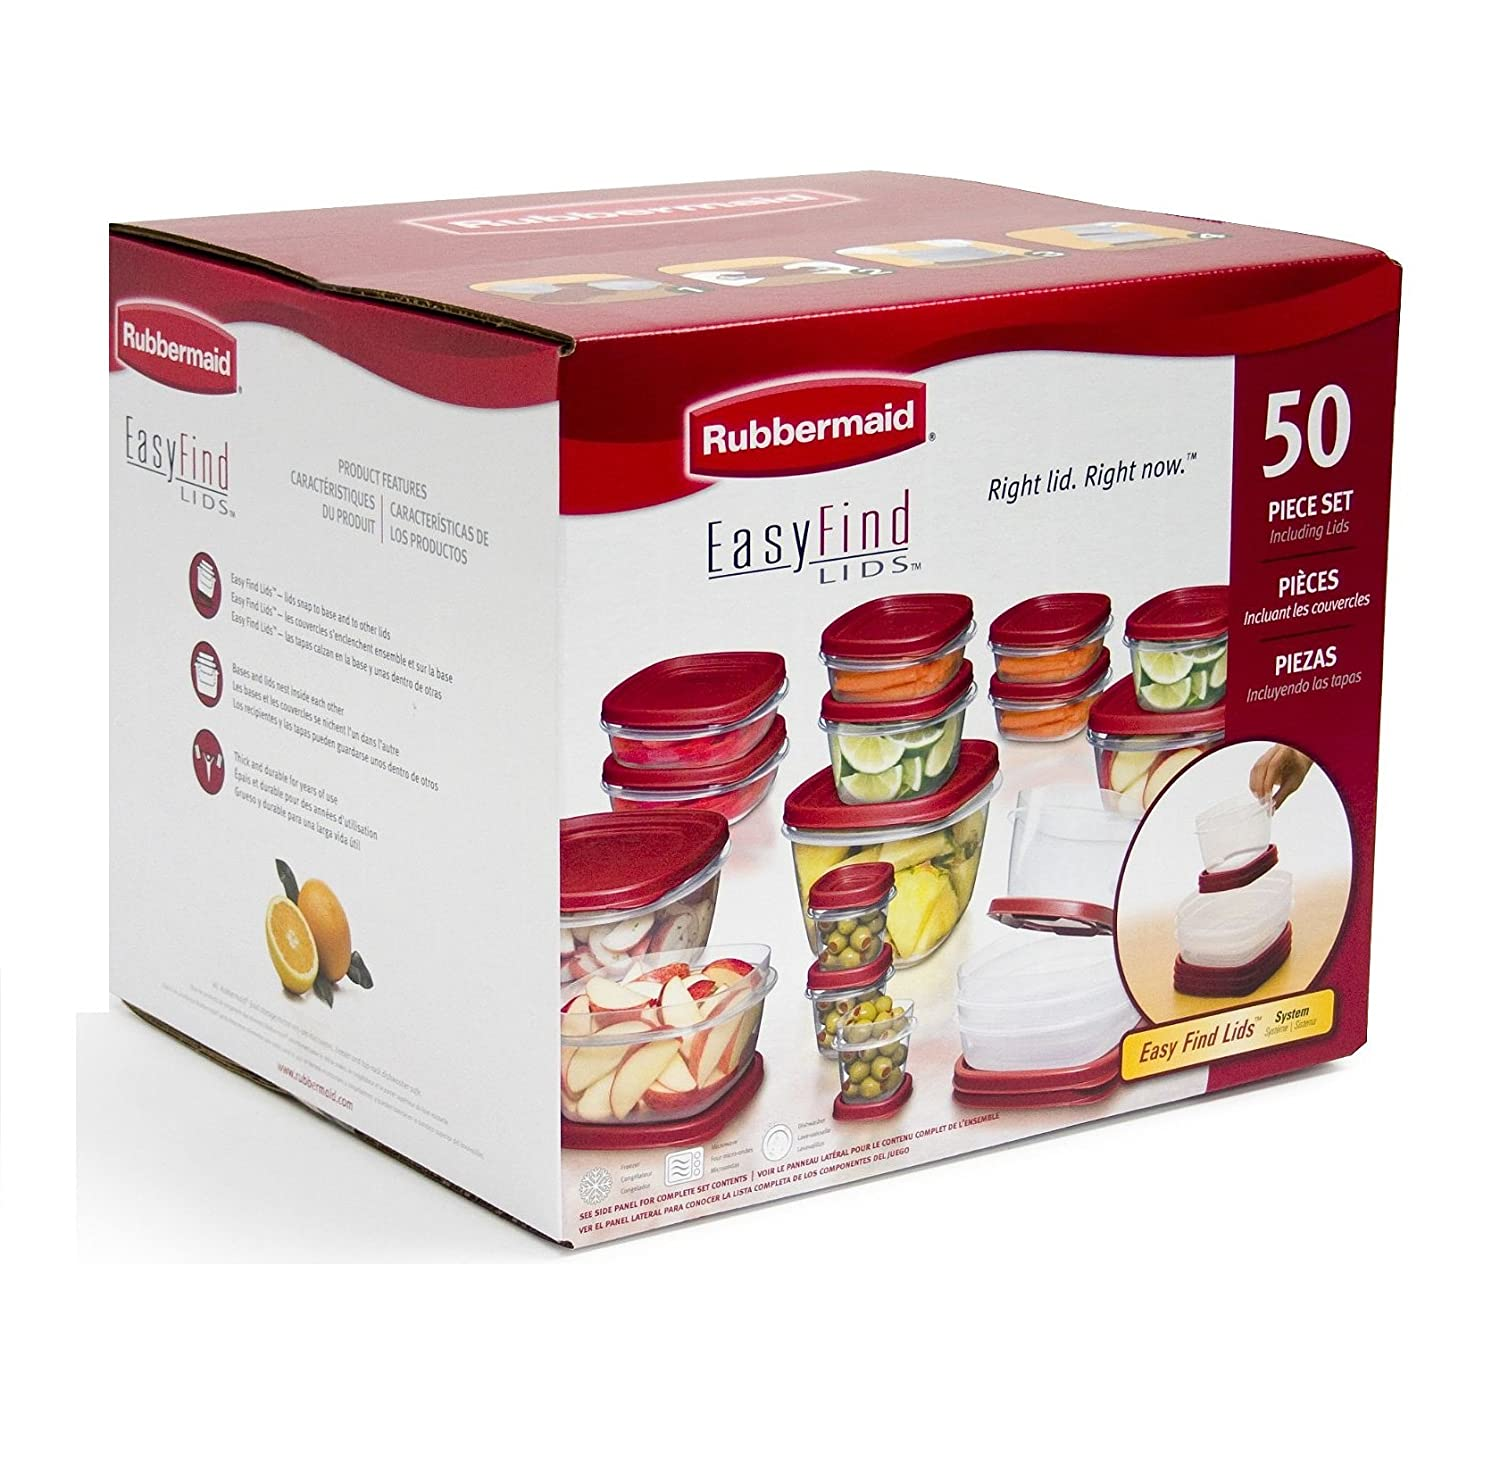 Amazon.com Rubbermaid Easy Find Lids Food Storage Containers Racer Red 50-Piece Set B002RSO2PW Kitchen Storage And Organization Product Accessories ...  sc 1 st  Amazon.com & Amazon.com: Rubbermaid Easy Find Lids Food Storage Containers Racer ...